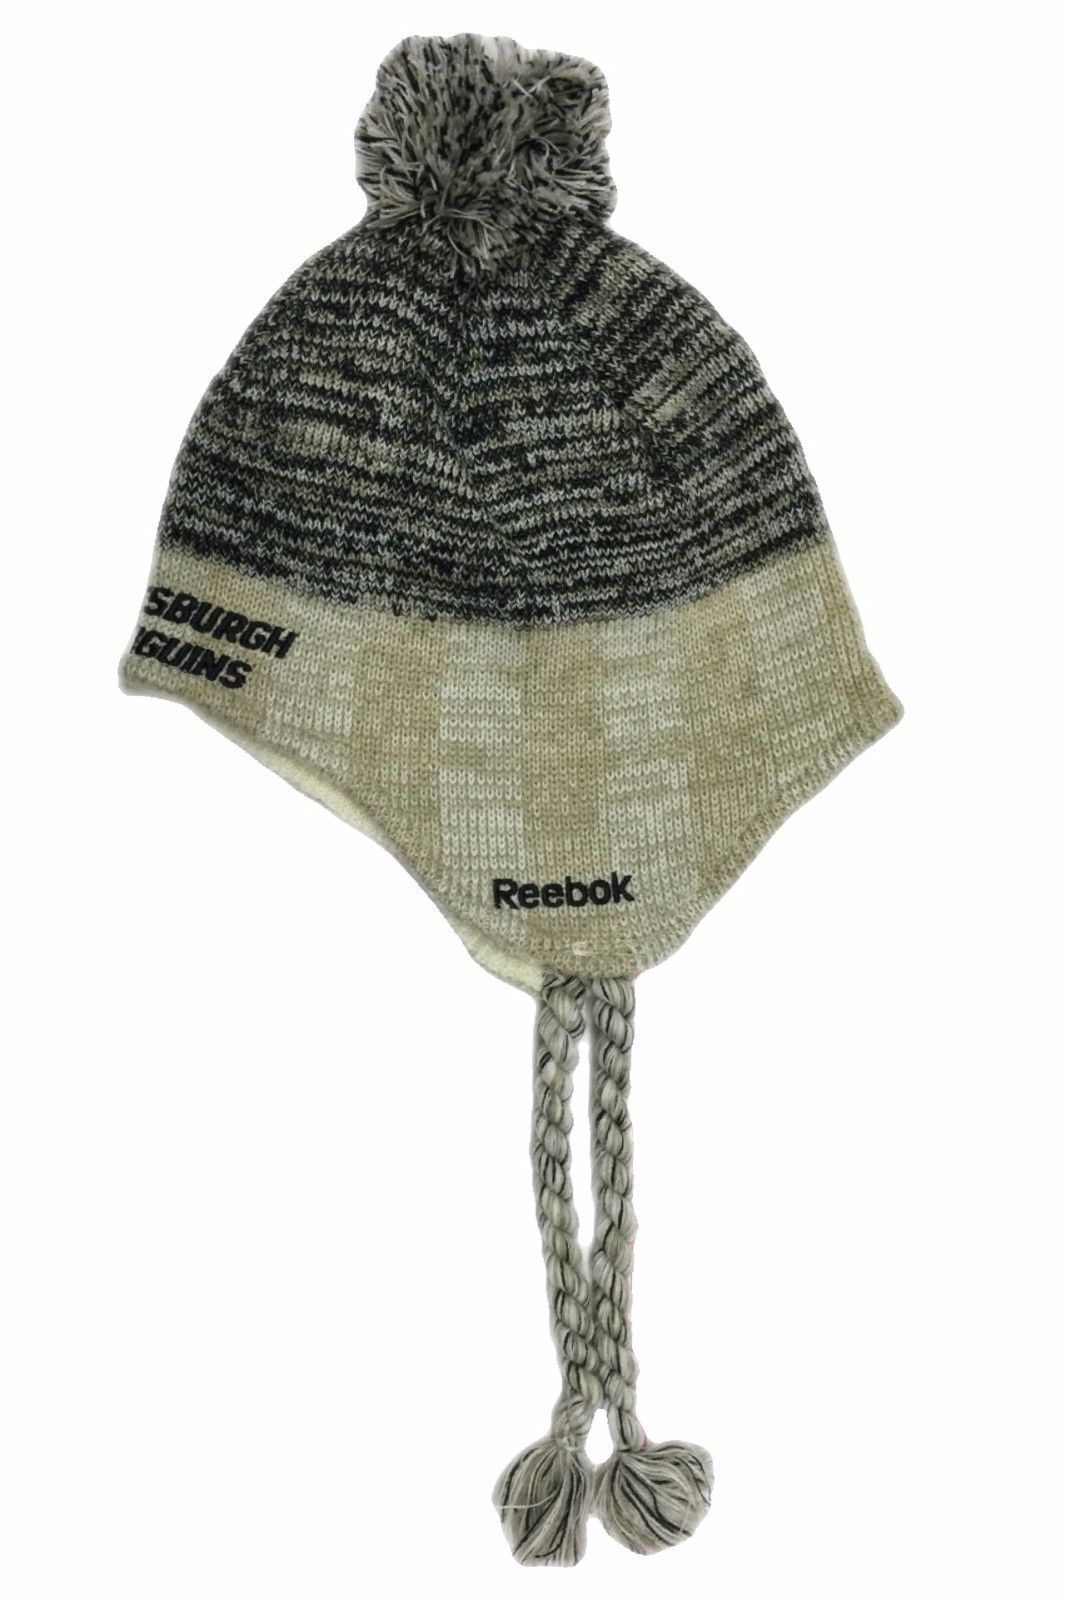 36e1aa7c89f Pittsburgh Penguins NHL Peruvian Winter Fitted Knit Pom Reebok Beanie Hat  NWT Os